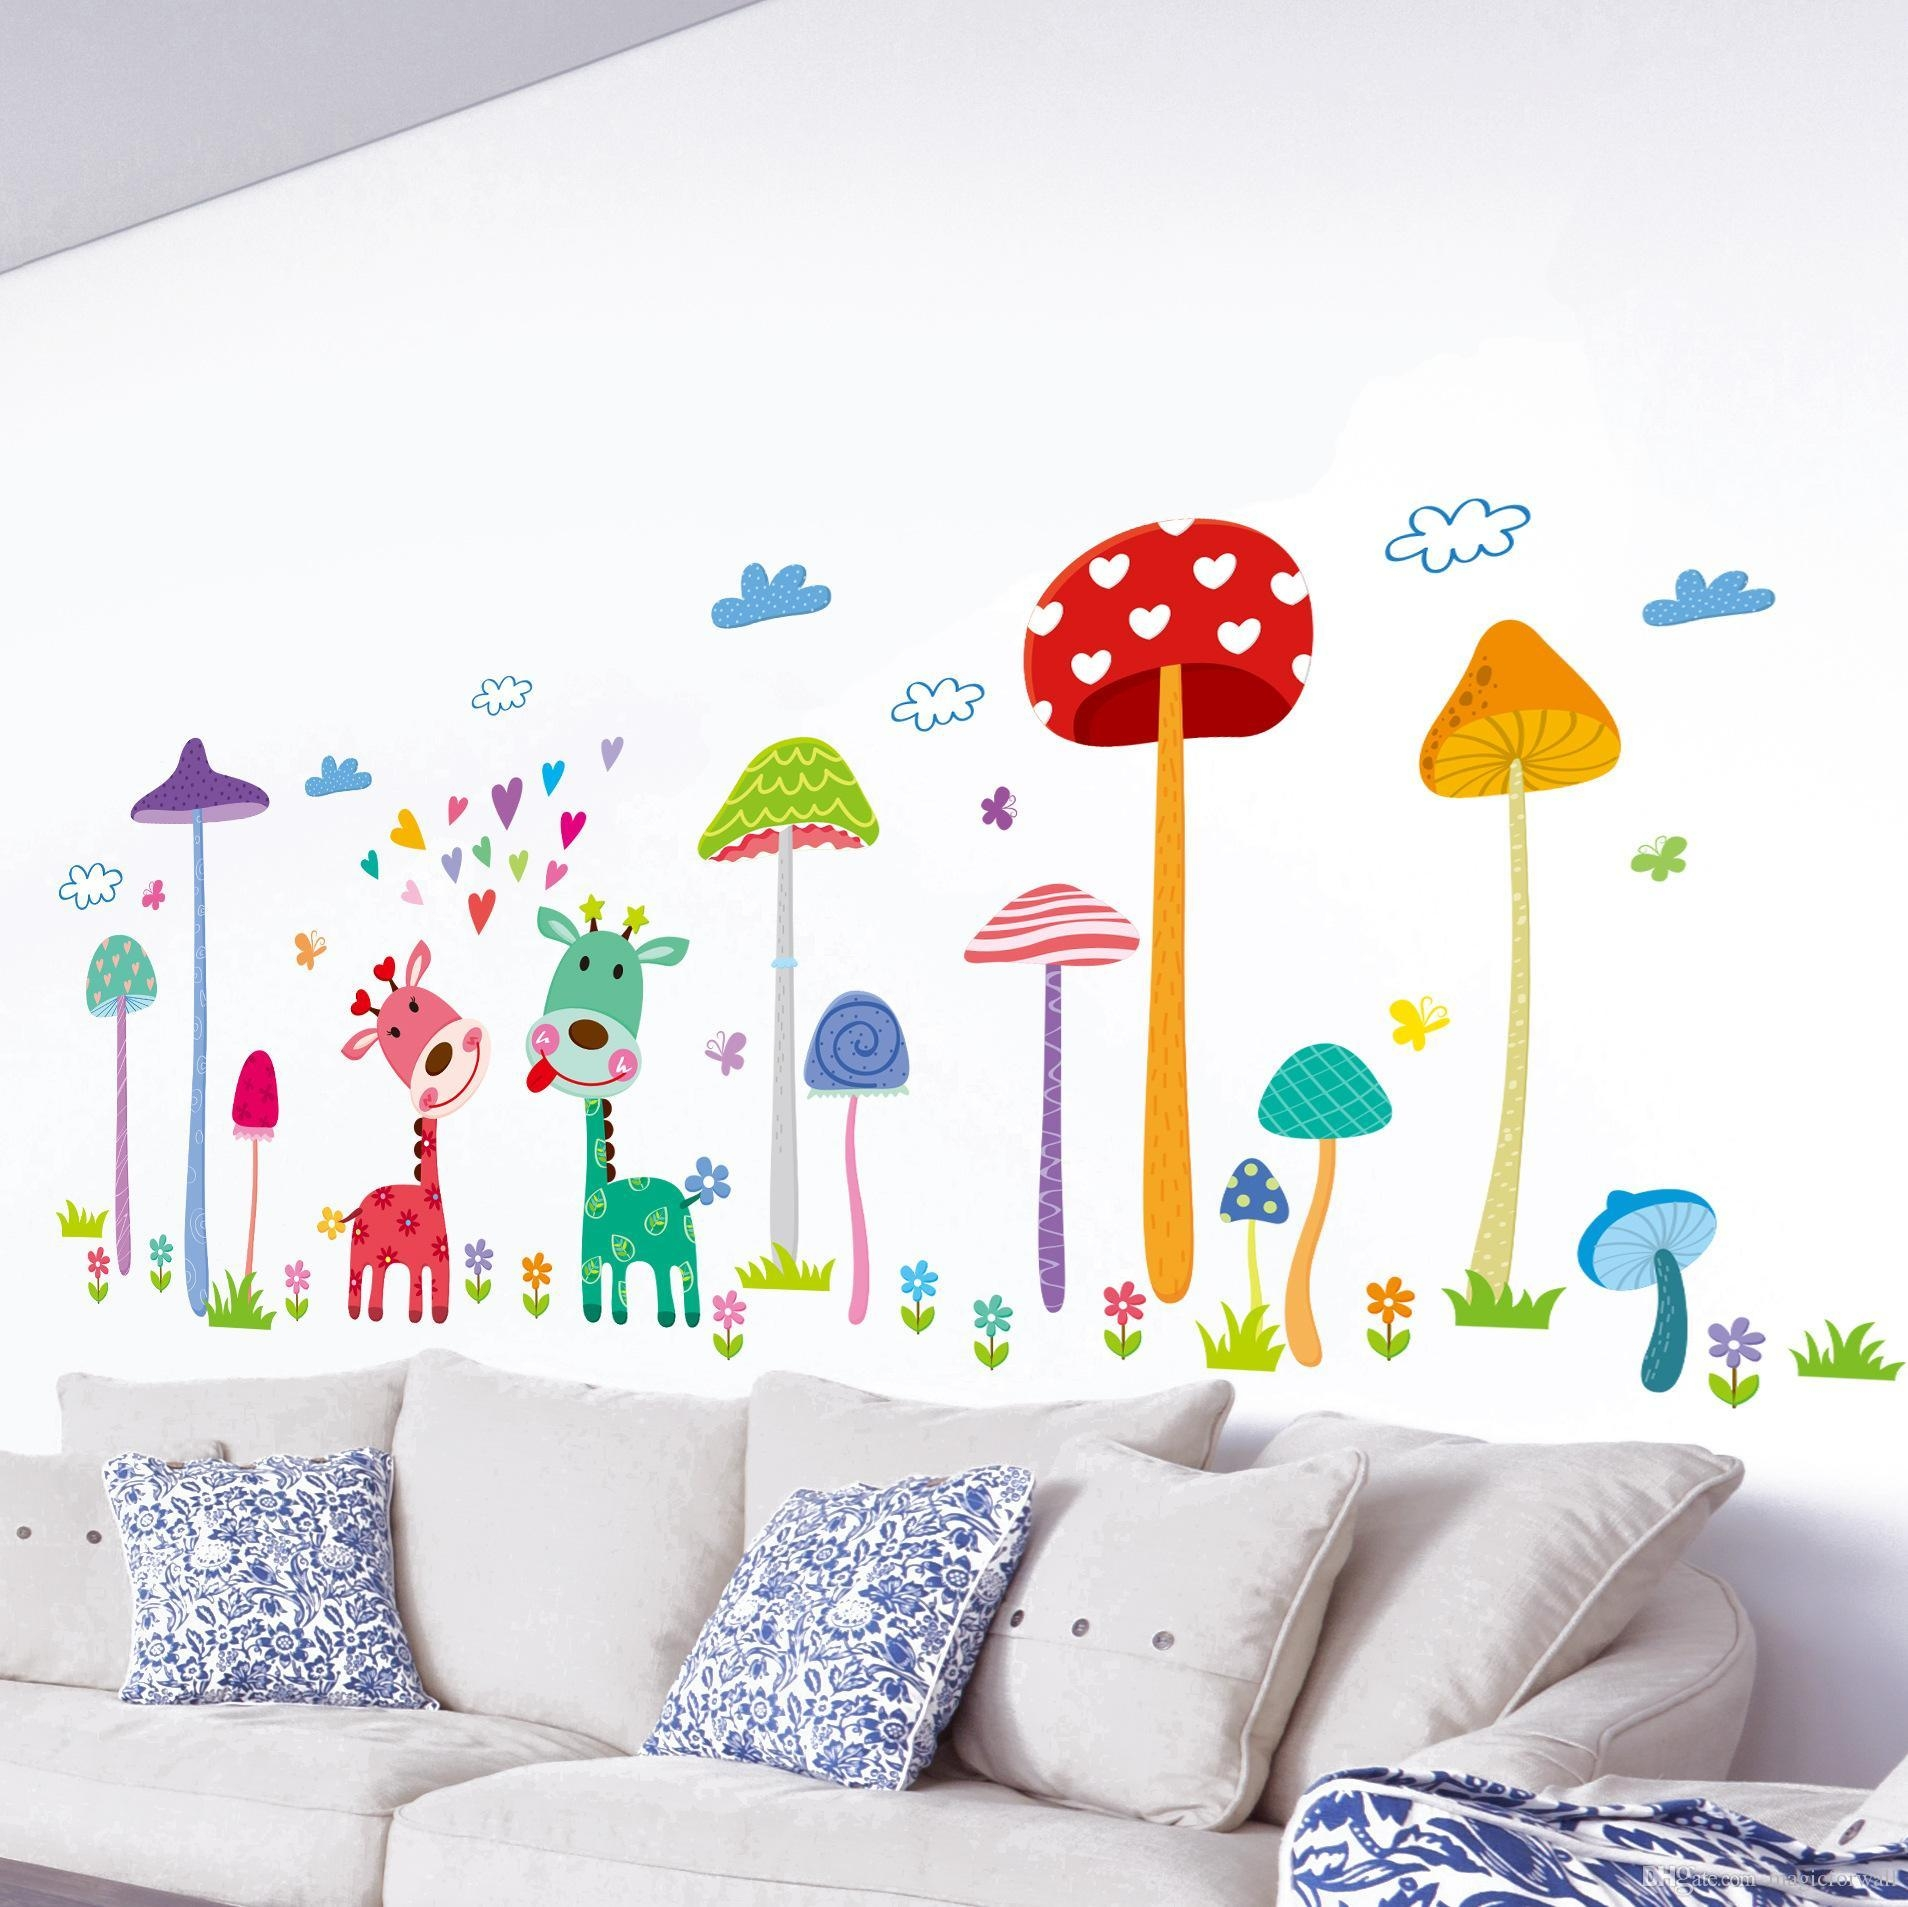 Forest Mushroom Deer Animals Home Wall Art Mural Decor Kids Babies With Regard To Mushroom Wall Art (Image 8 of 20)